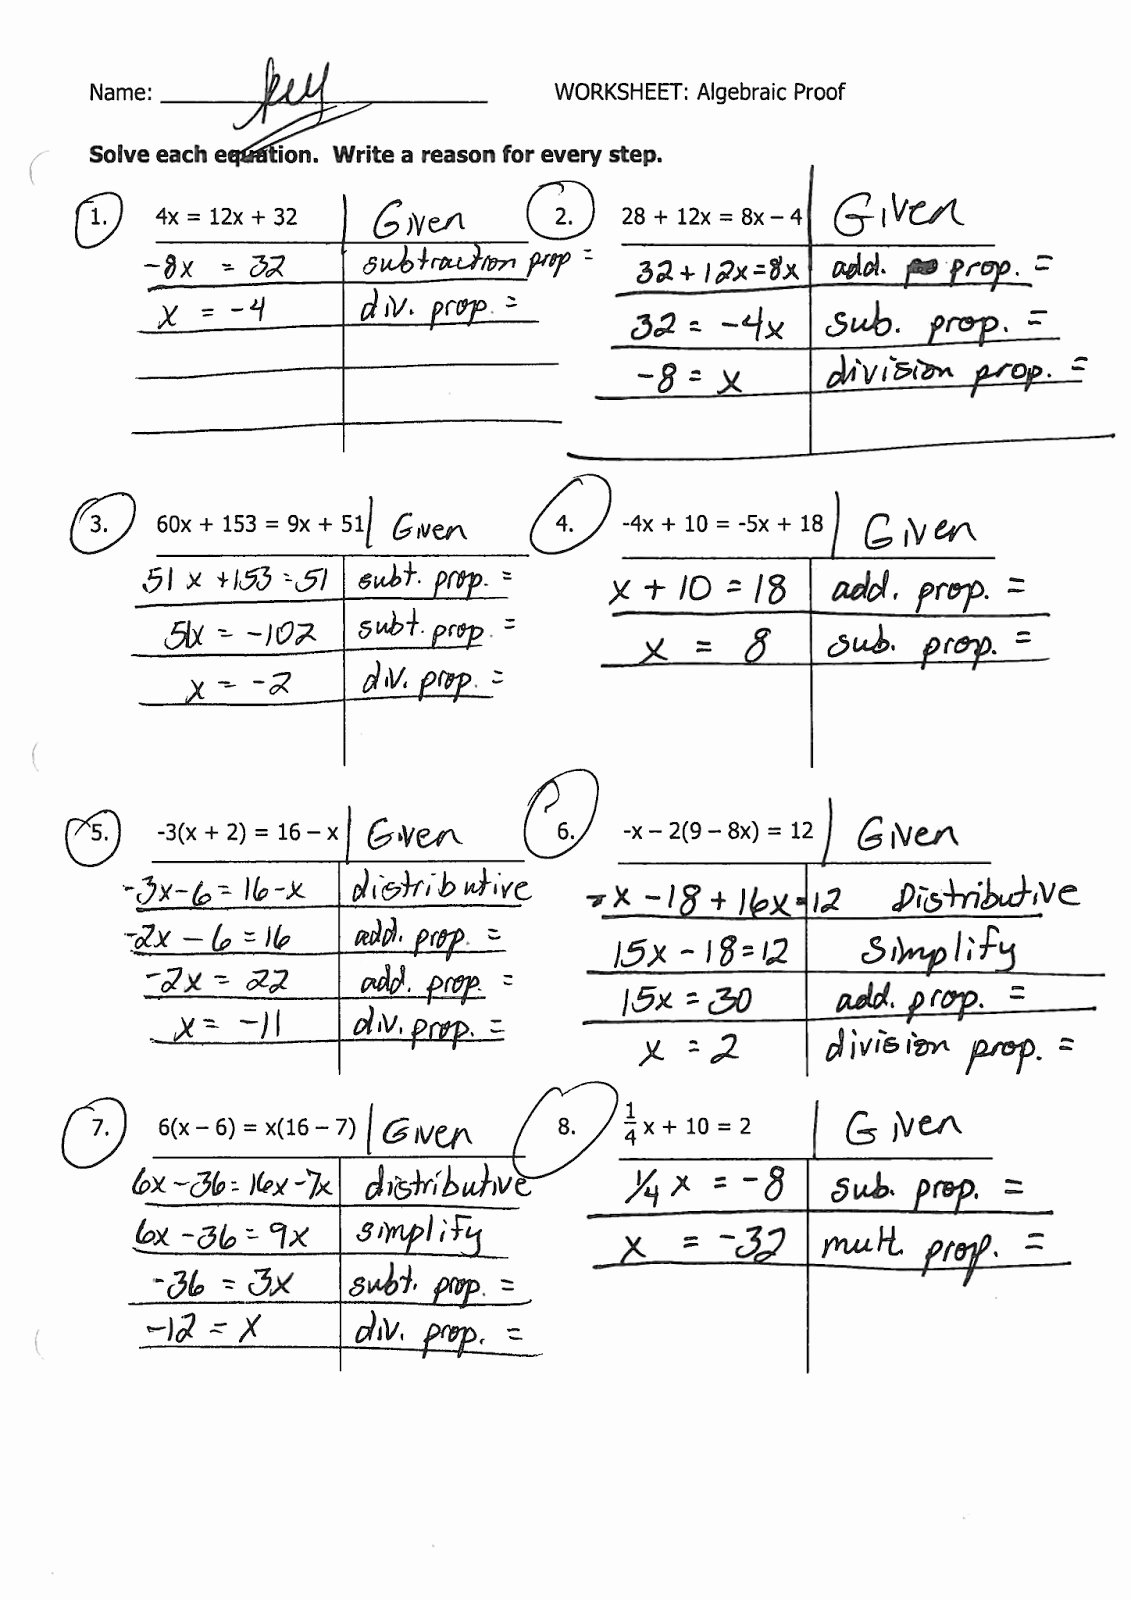 Geometric Proofs Worksheet with Answers Printable Geometry Proofs Worksheets with Answers